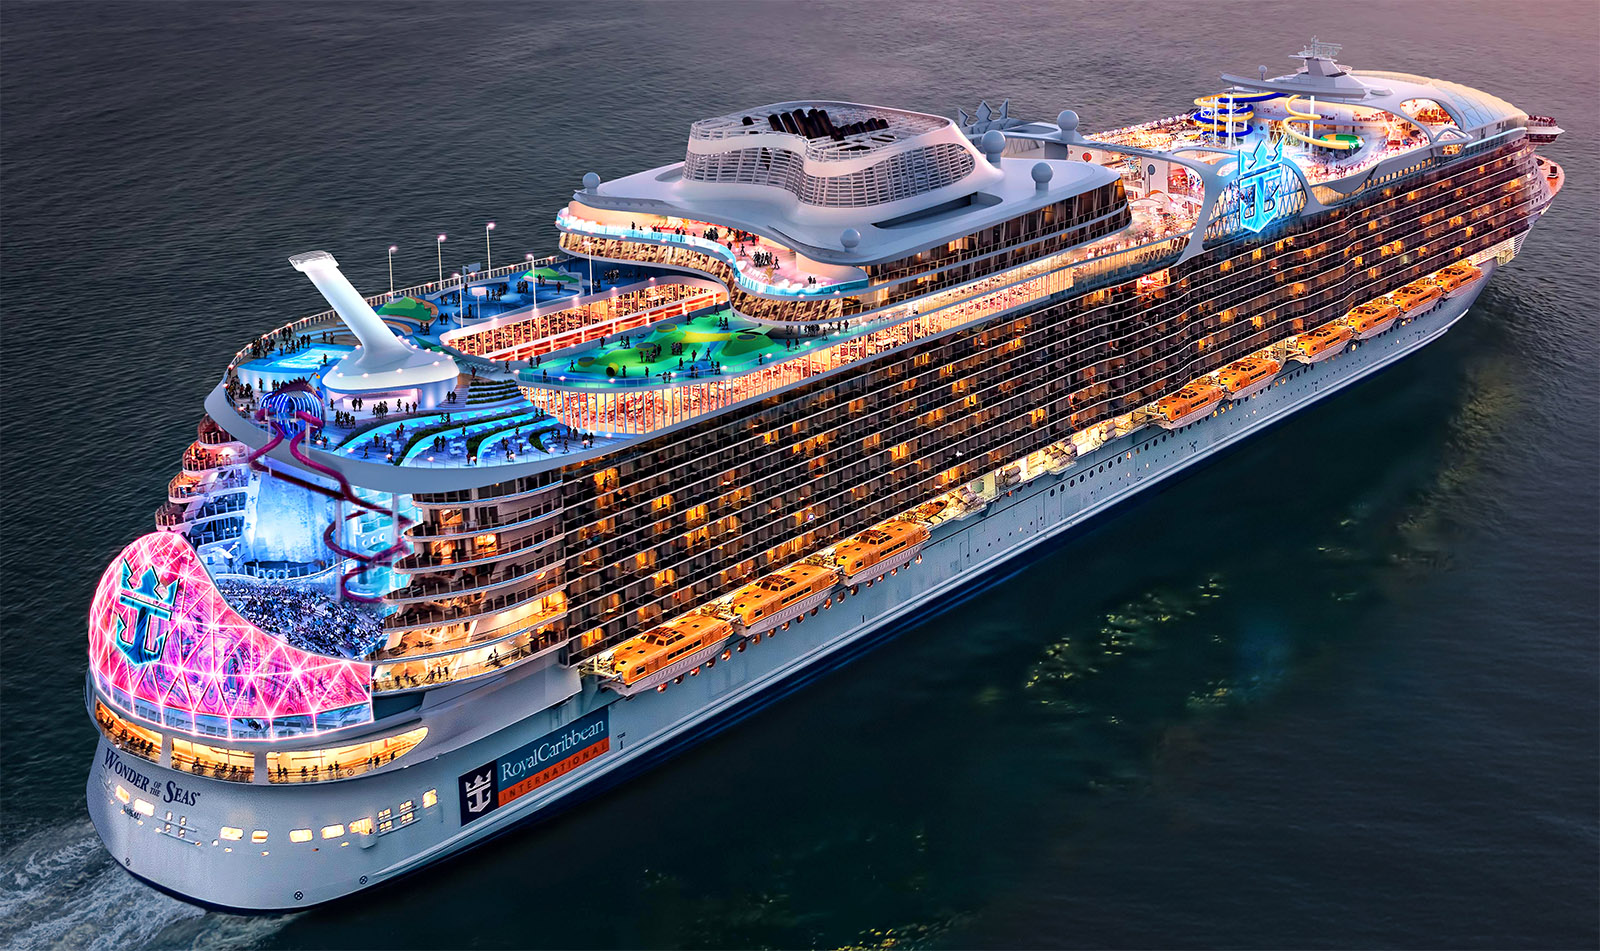 Royal Caribbean Announces World U0026 39 S Largest Cruise Ship To Sail From China In 2021